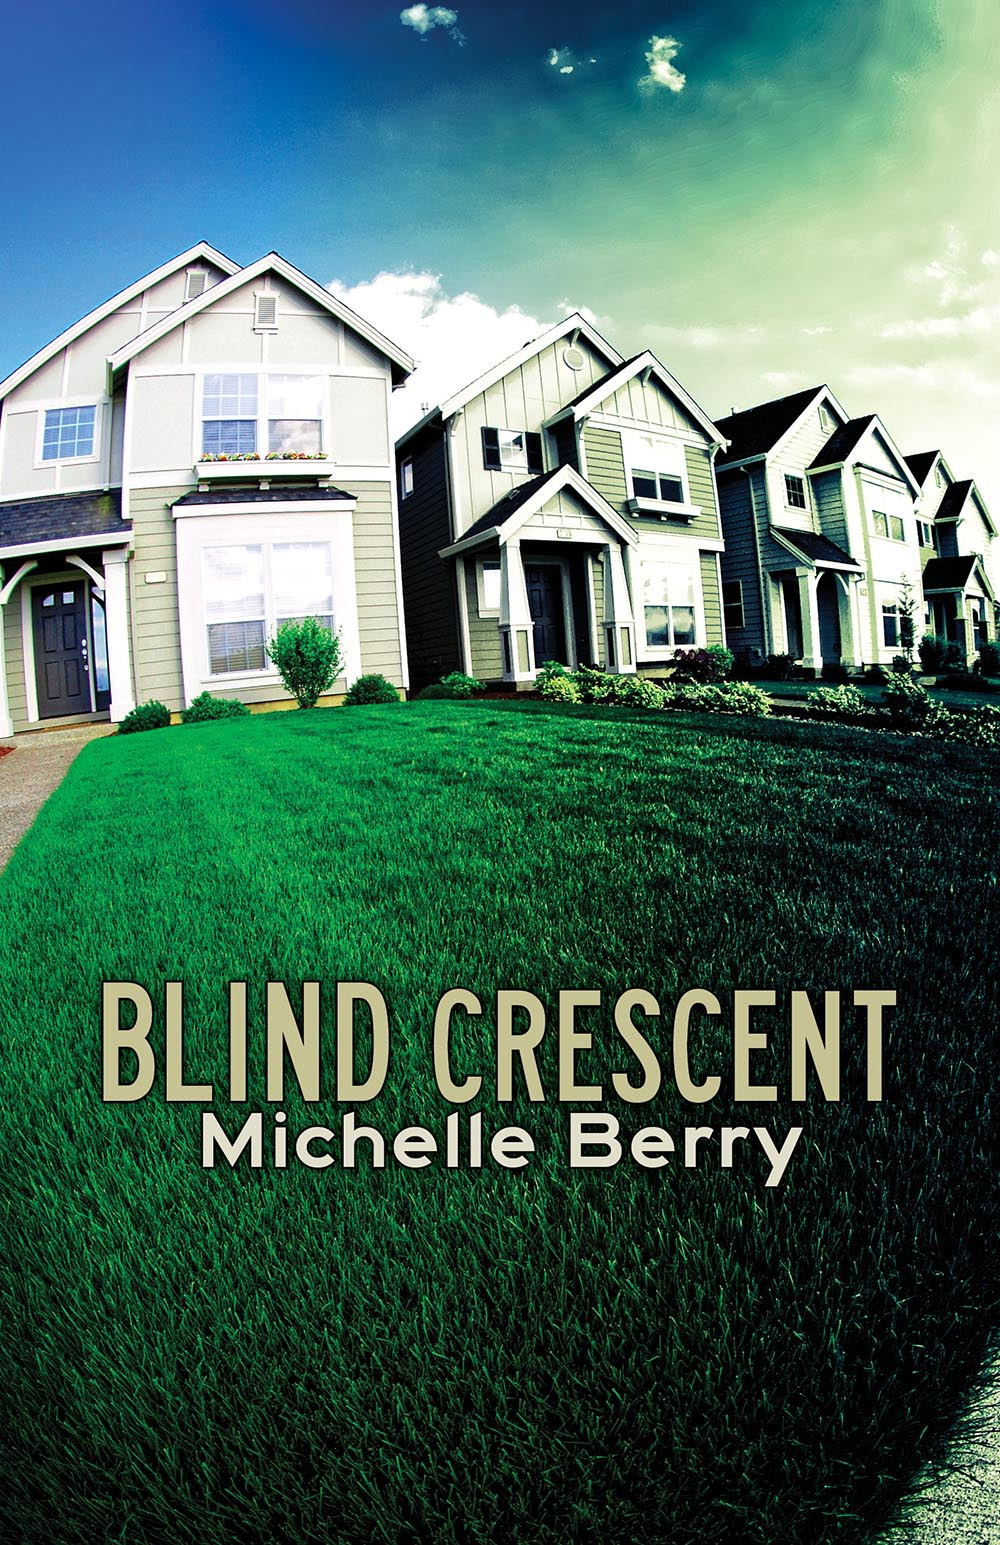 Blind Crescent by Michelle Berry